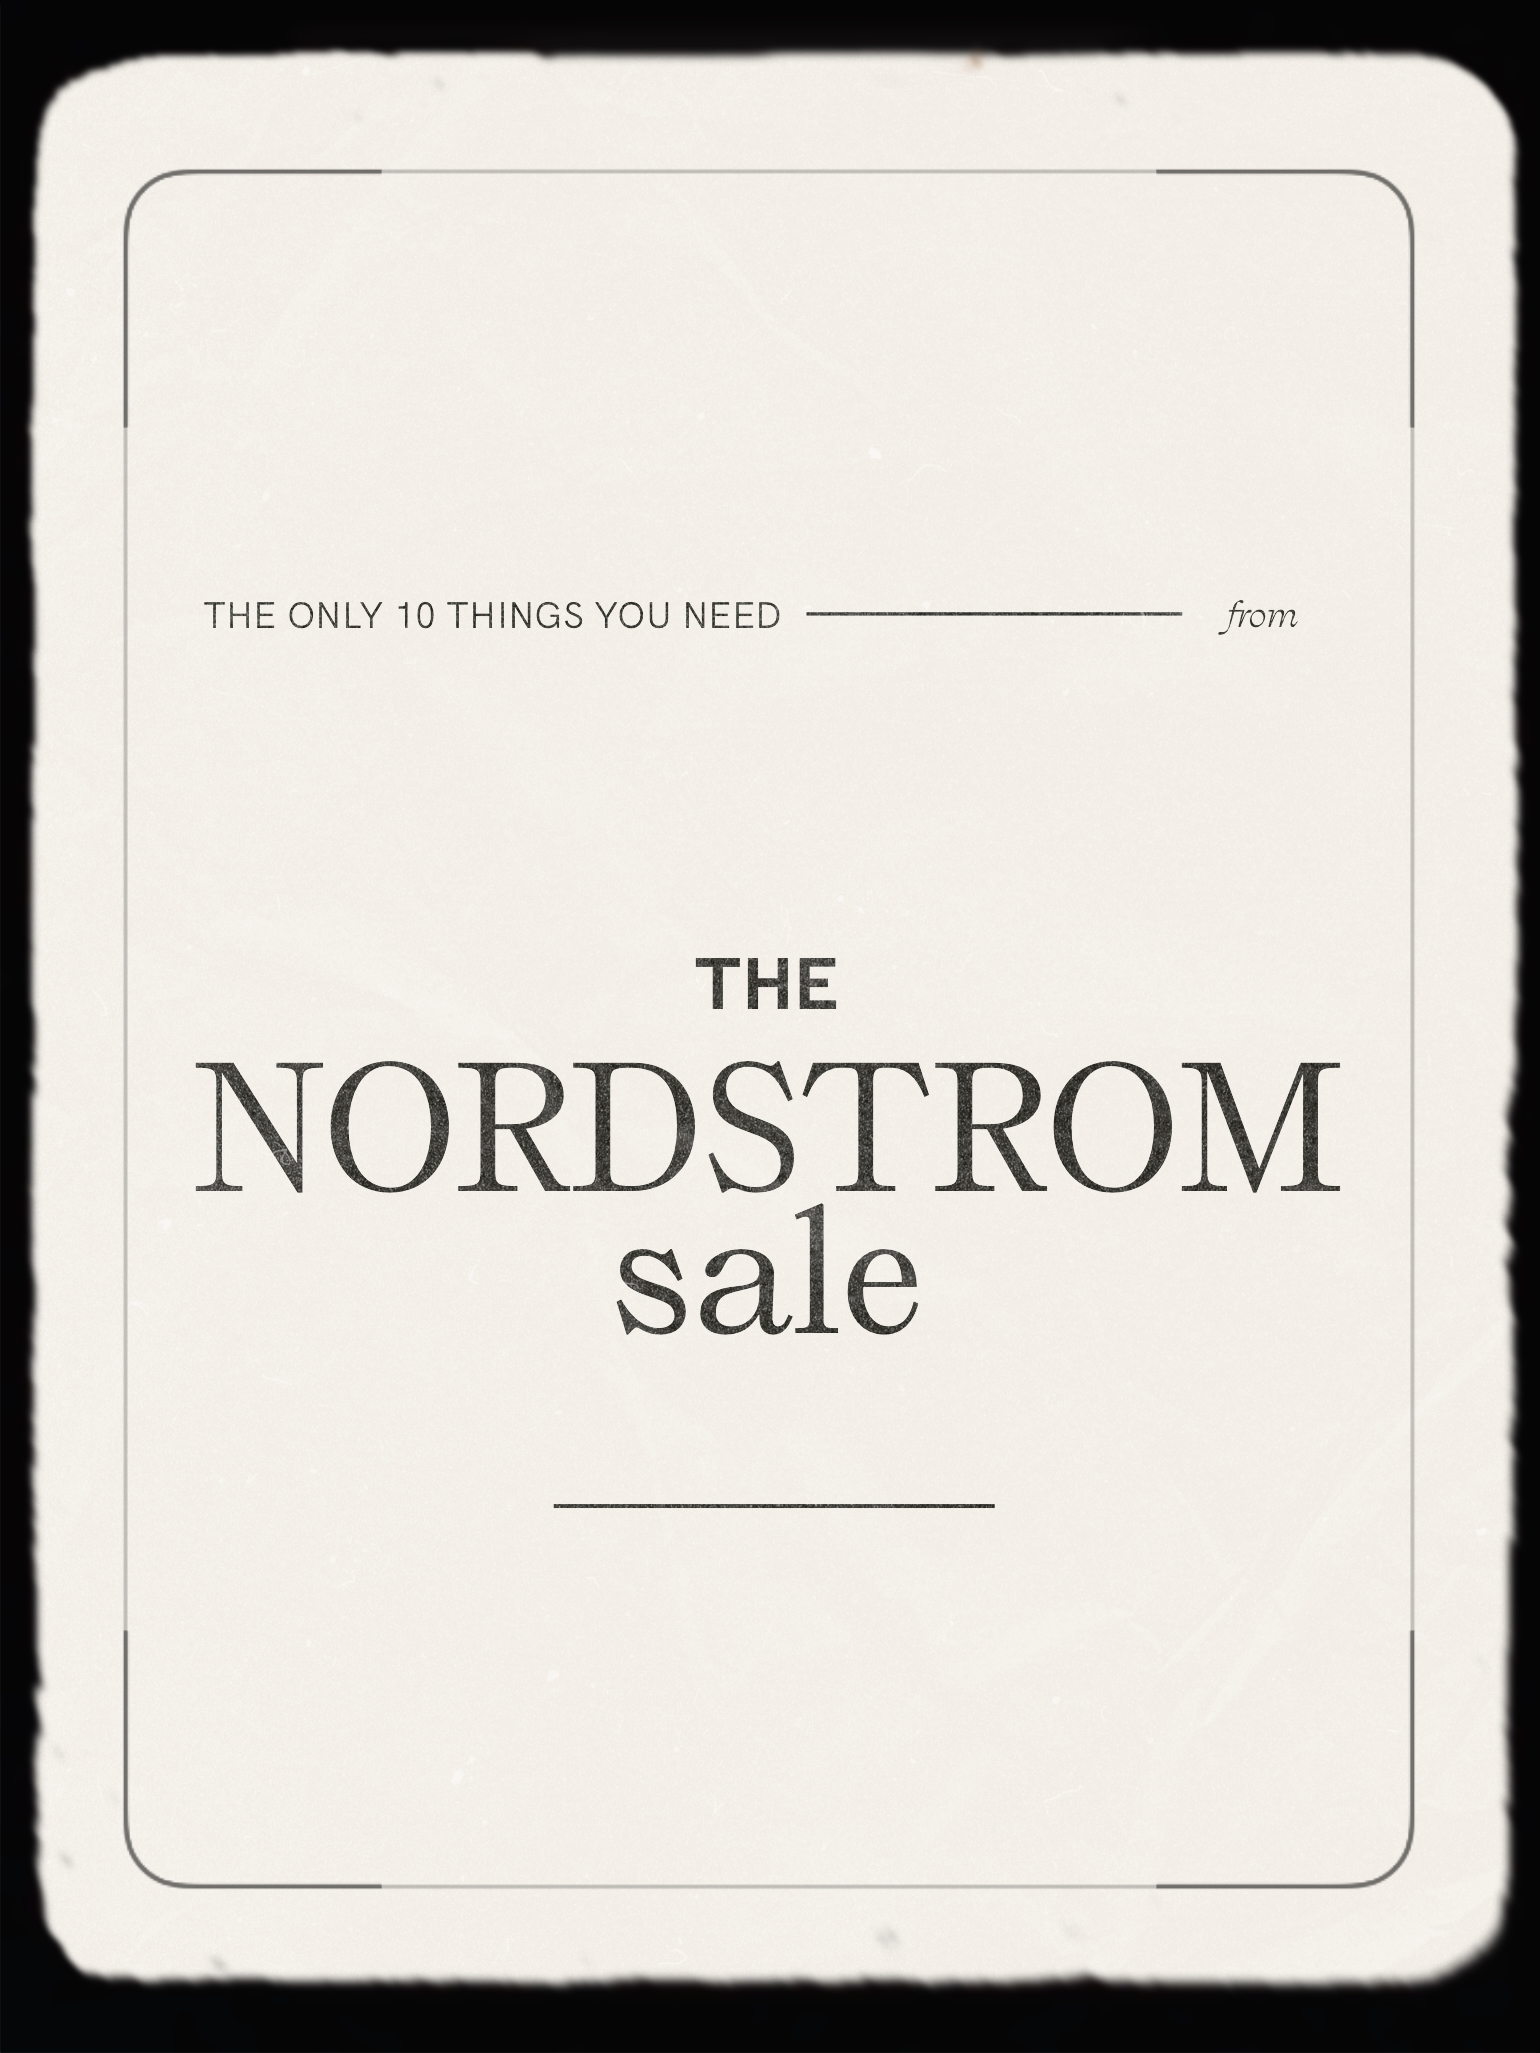 The Only 10 Things You Need from the Nordstrom Sale